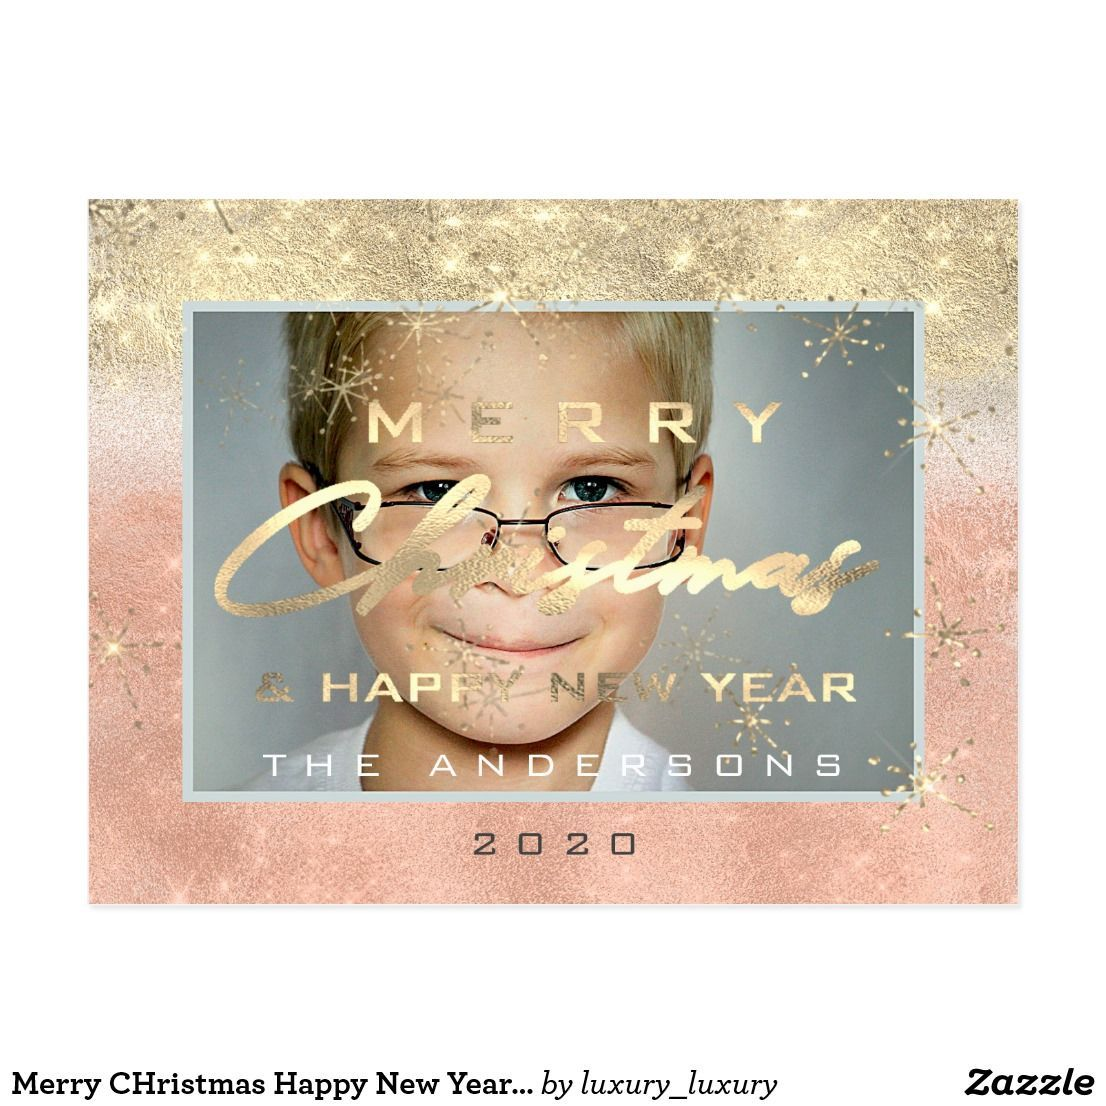 Merry CHristmas Happy New Year Gold Photo Glitter Postcard